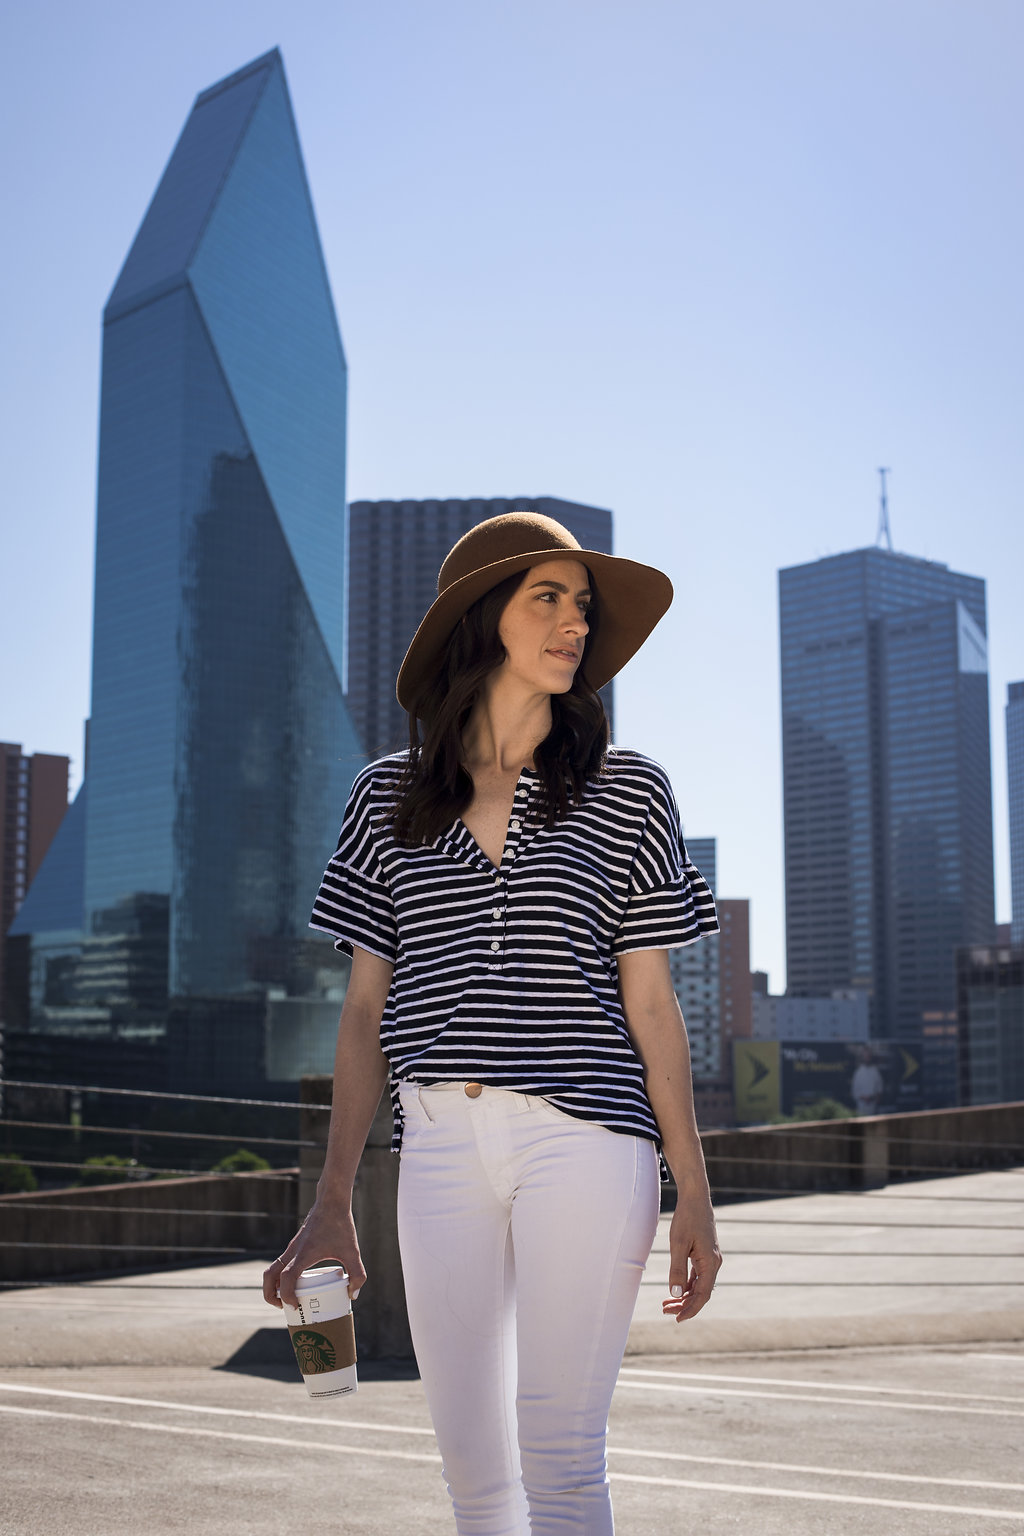 Styling a flutter sleeve top for summer